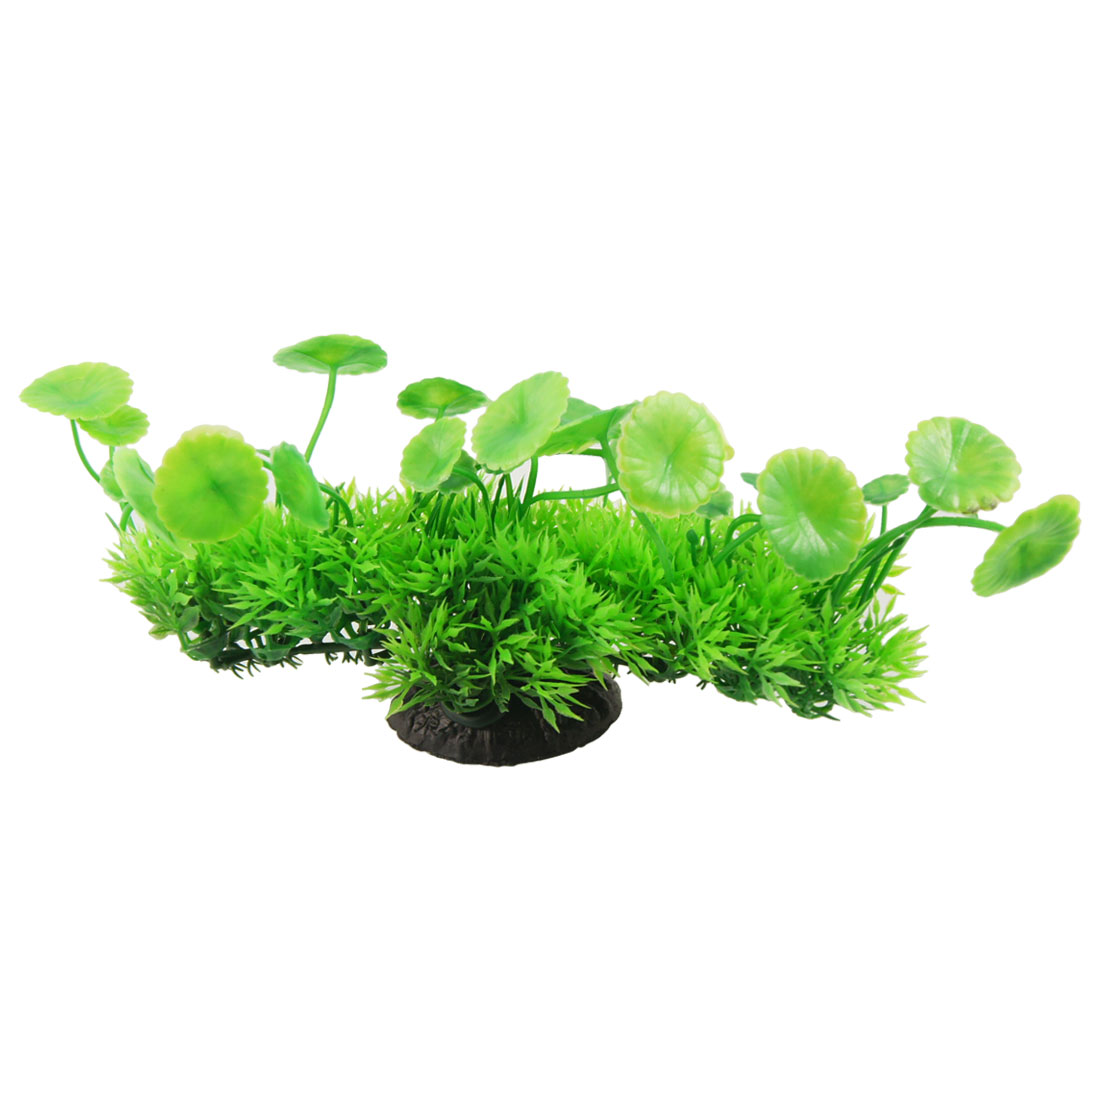 "Plastic Green 8.7"" Wide Artificial Plants for Fish Tank"